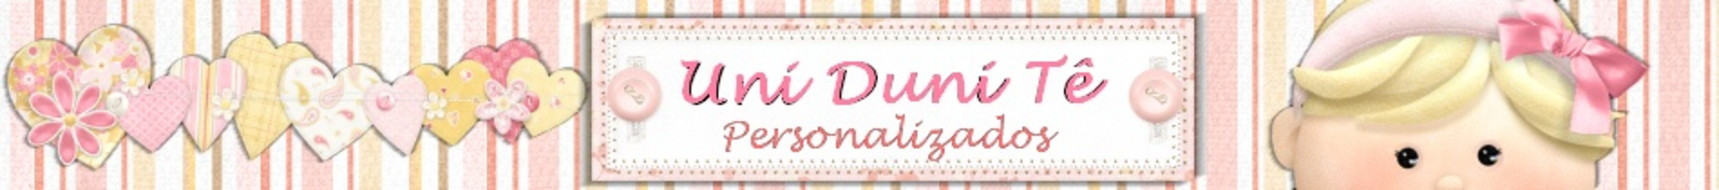 Uni Duni T Personalizados